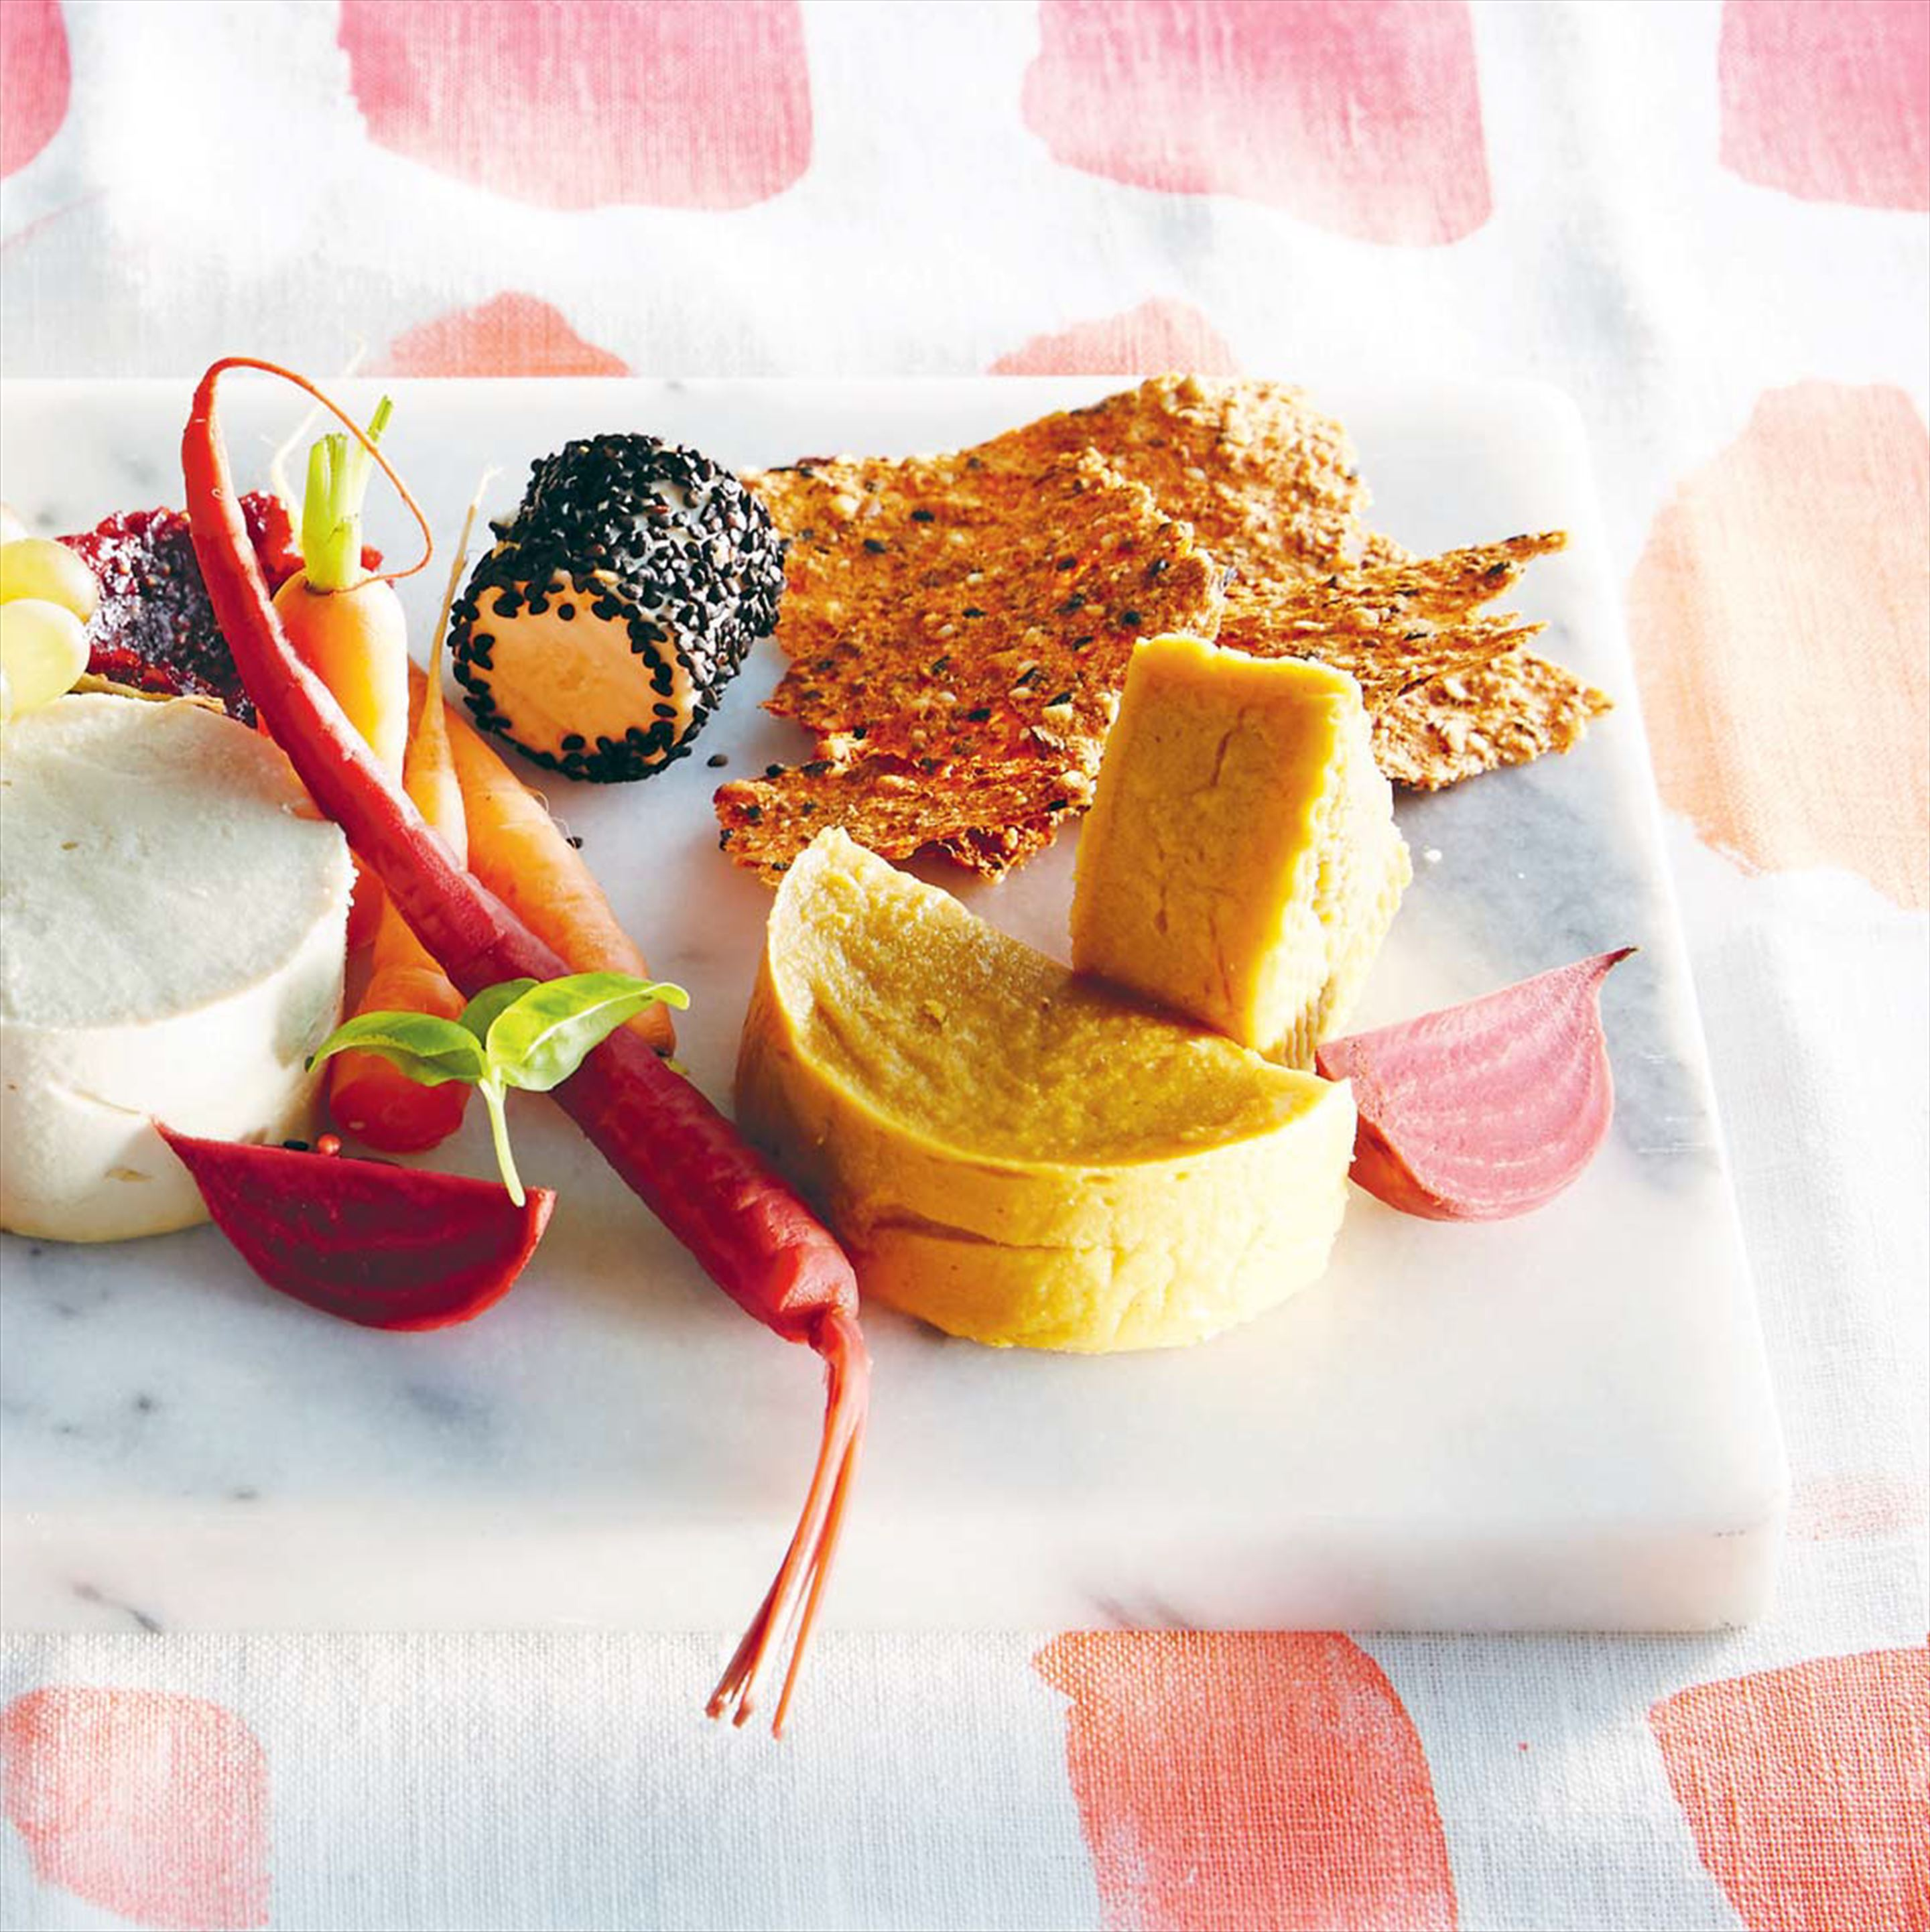 'Cheese' tasting plate